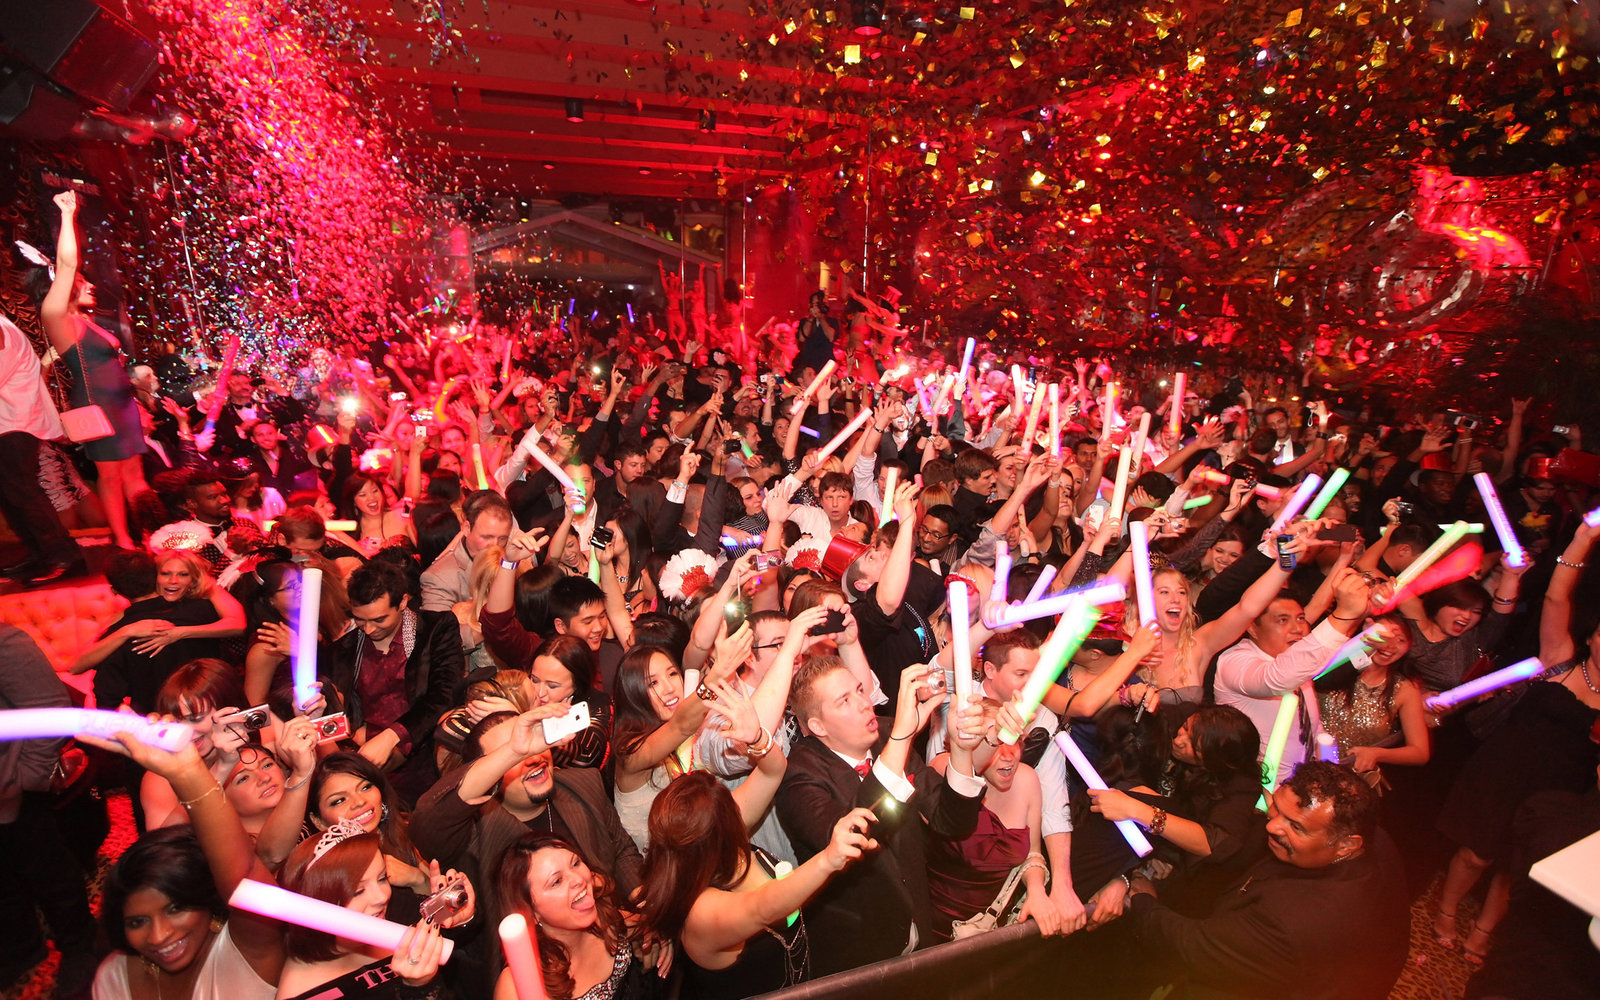 Las Vegas Nevada New Year's Eve